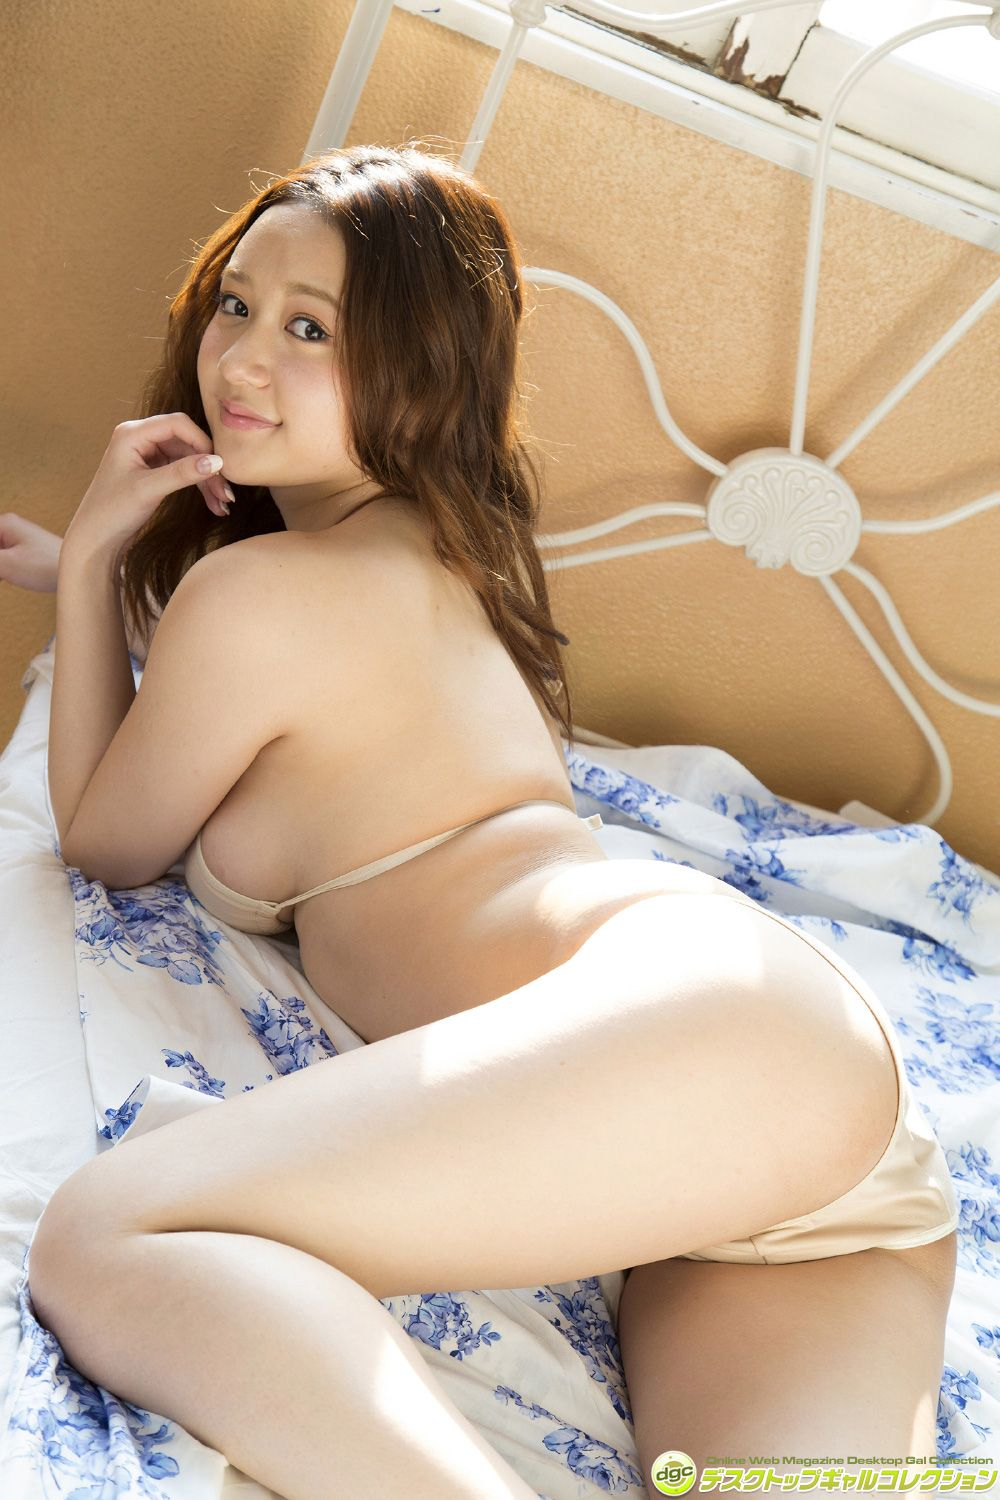 She has beautiful white, clear skin and marshmallow G cups023